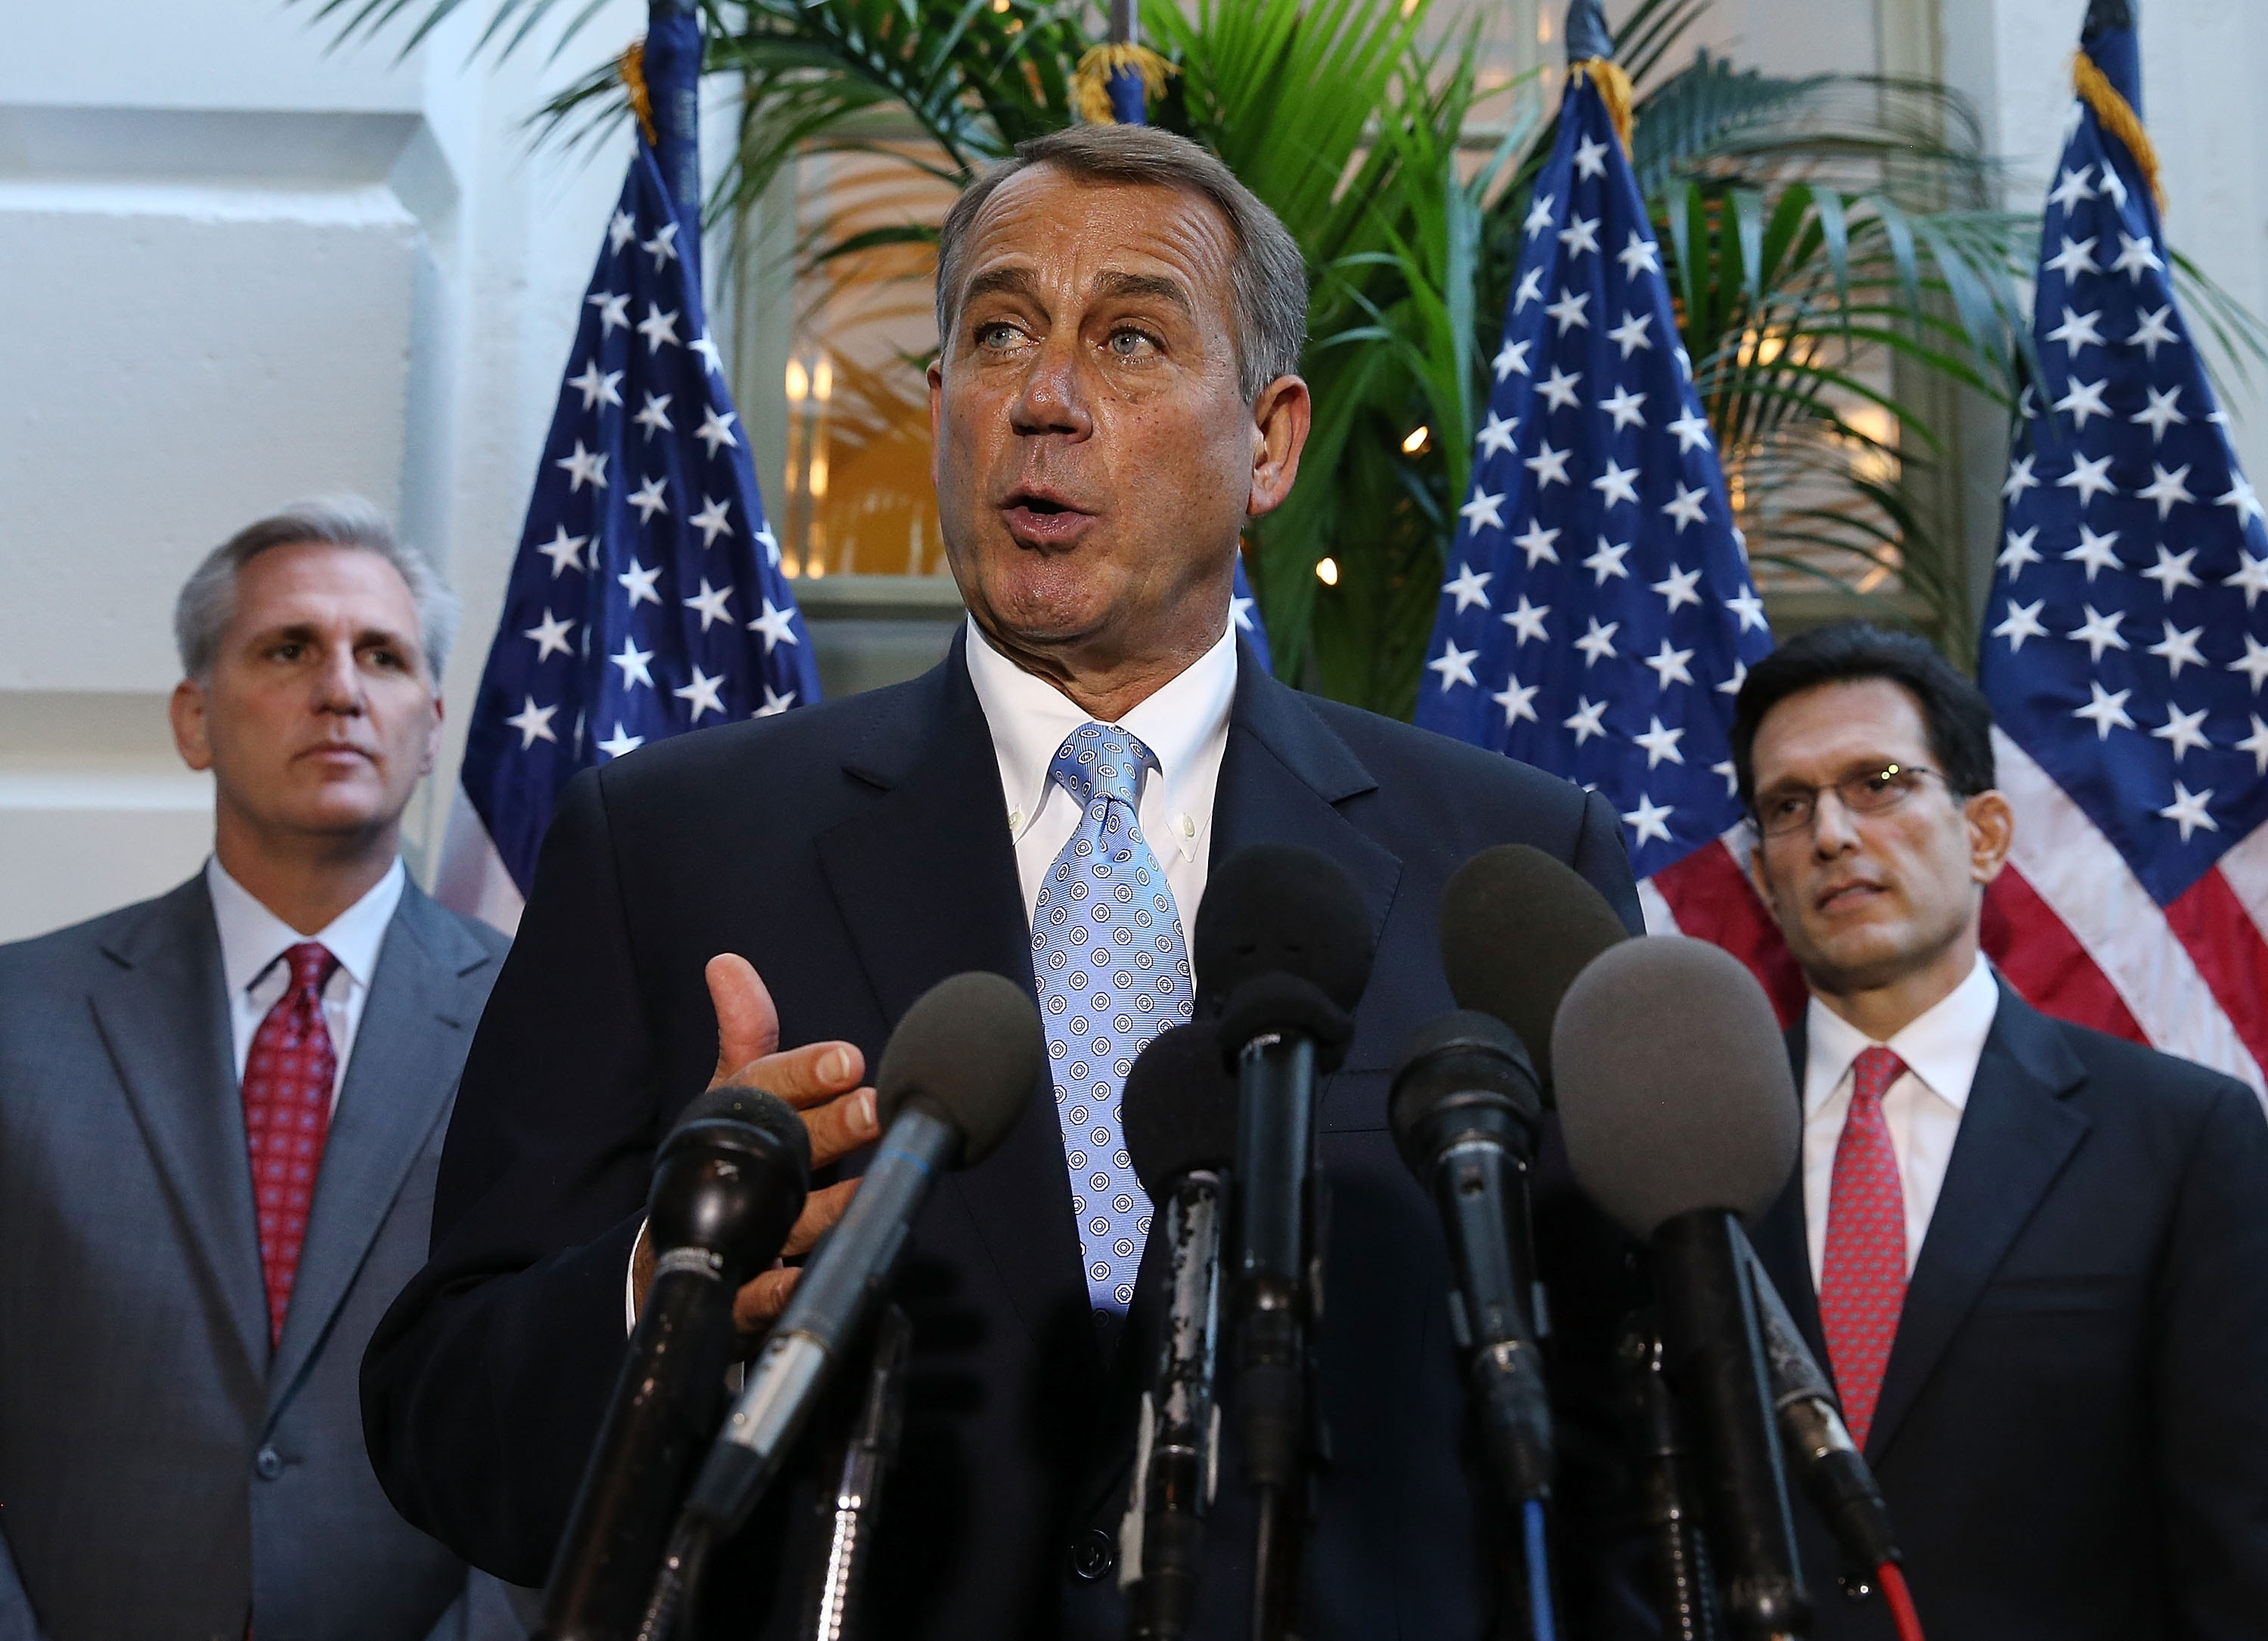 House Speaker John Boehner speaks to the media while flanked by House Majority Leader Eric Cantor after a party caucus Tuesday. The nation is less than 48 hours away from default.